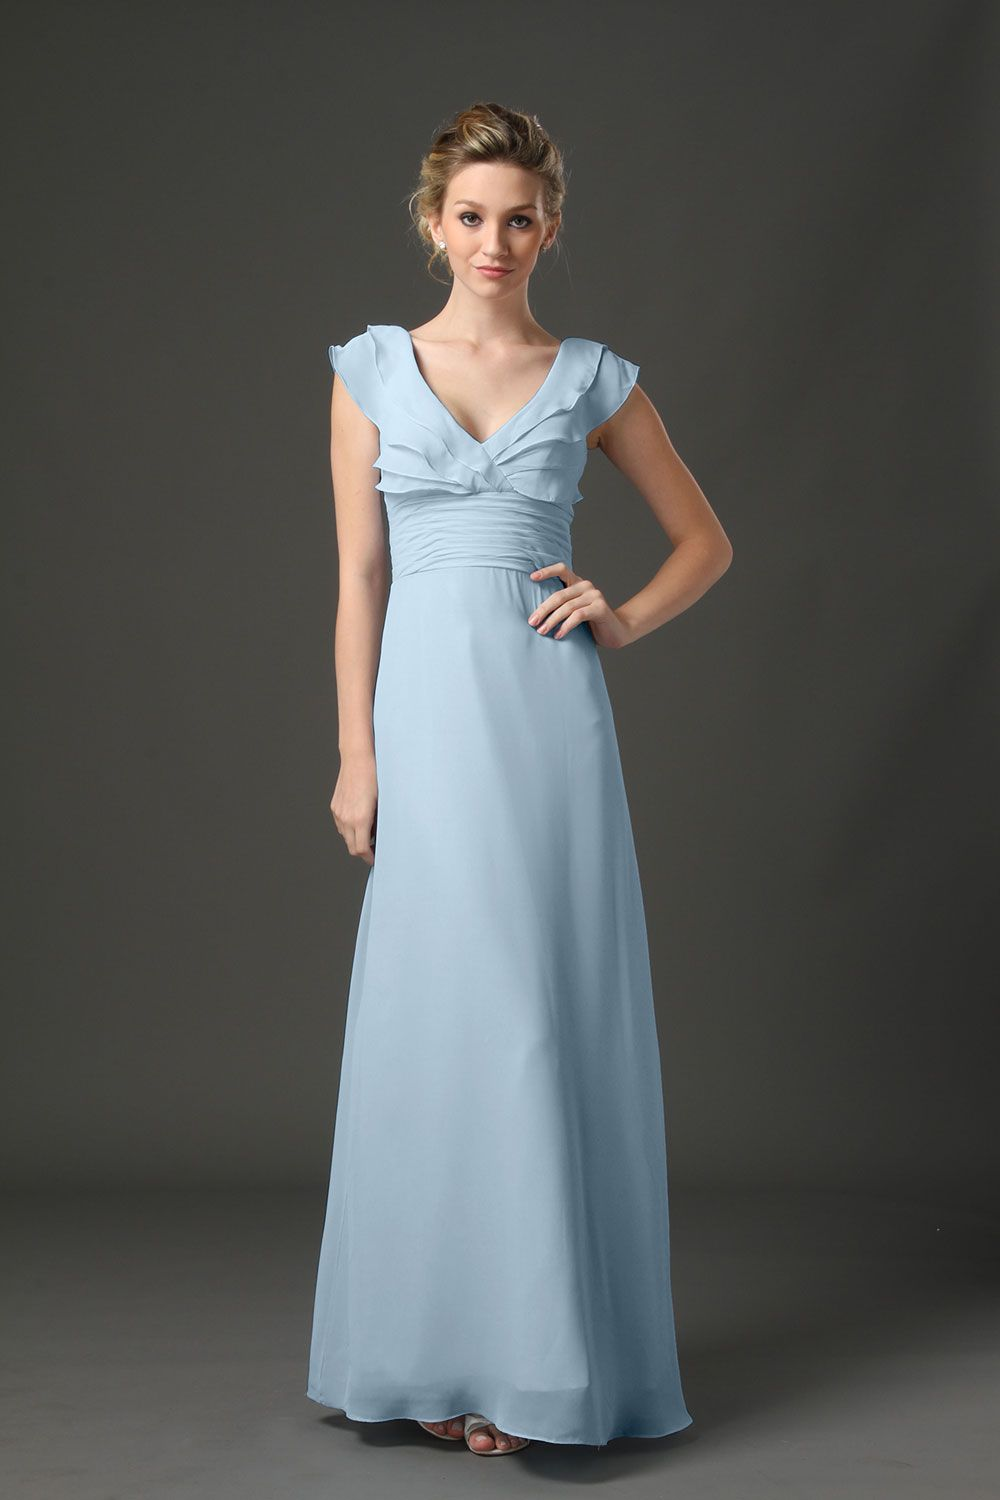 #85033 - Floor-Length V-Neck Ruffled Chiffon Dress